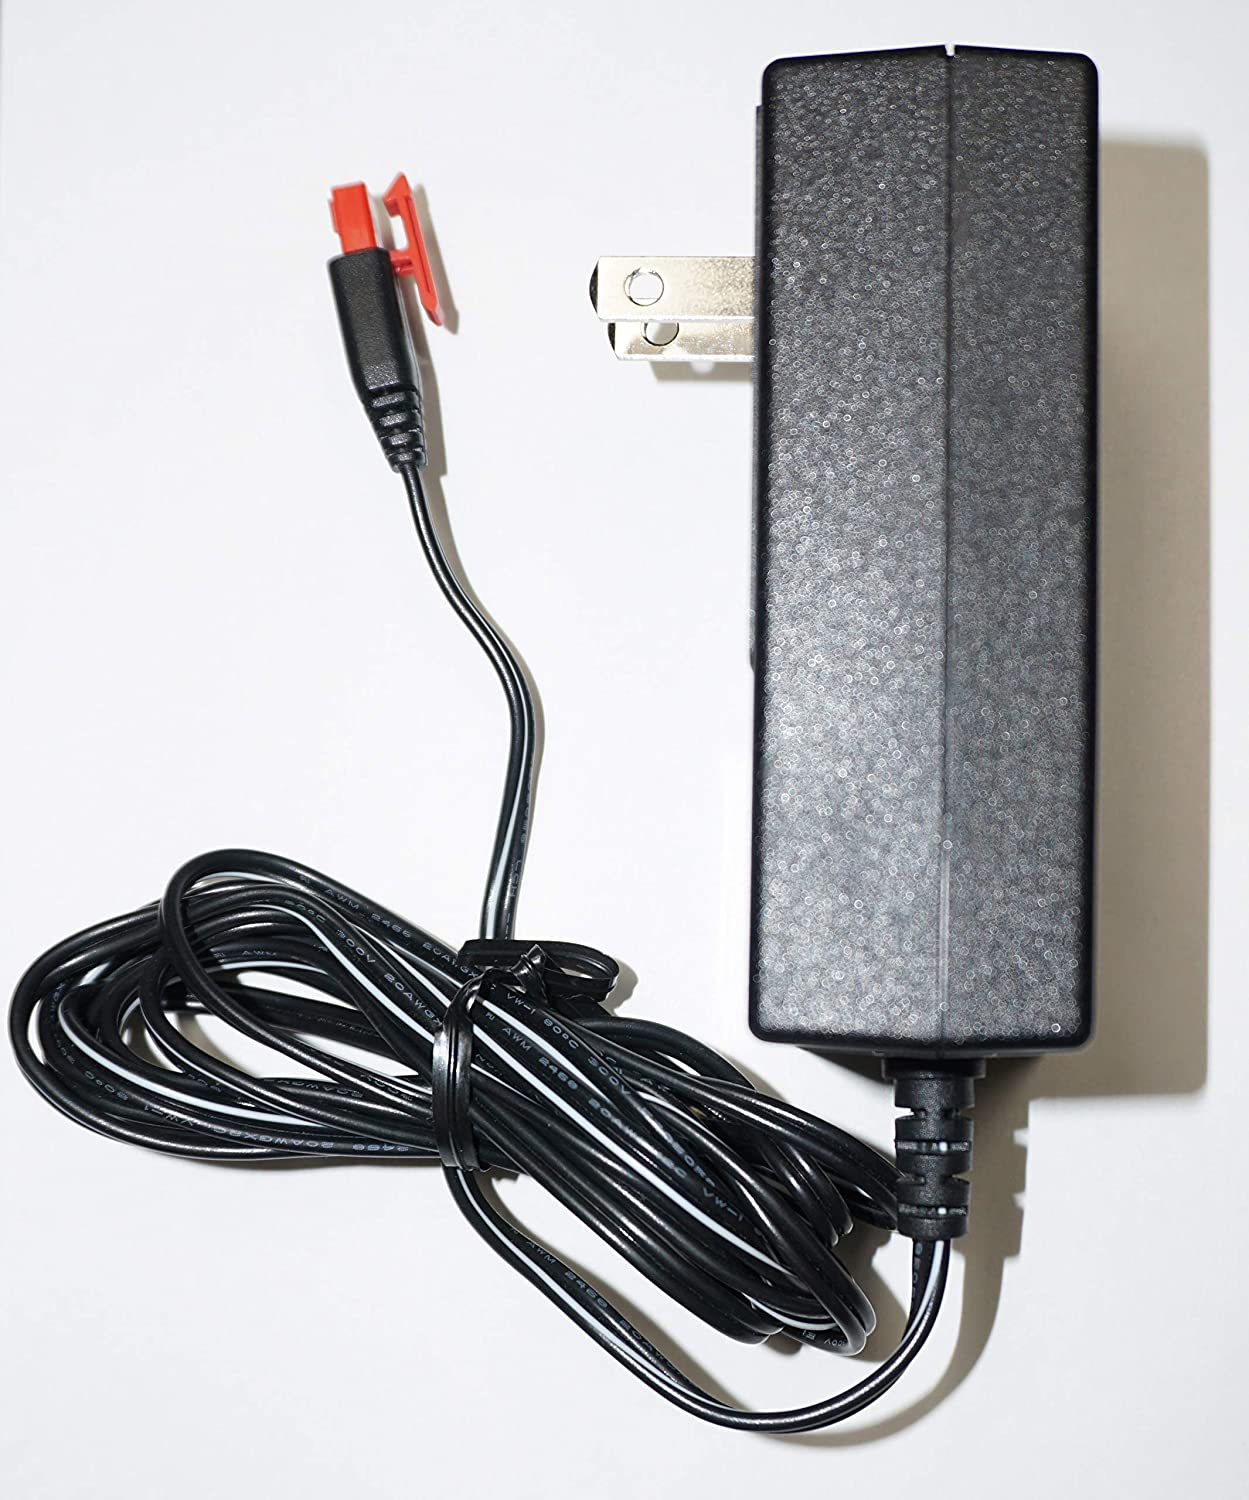 Dish Network Wireless Joey Power Adapter 12v 2.1a